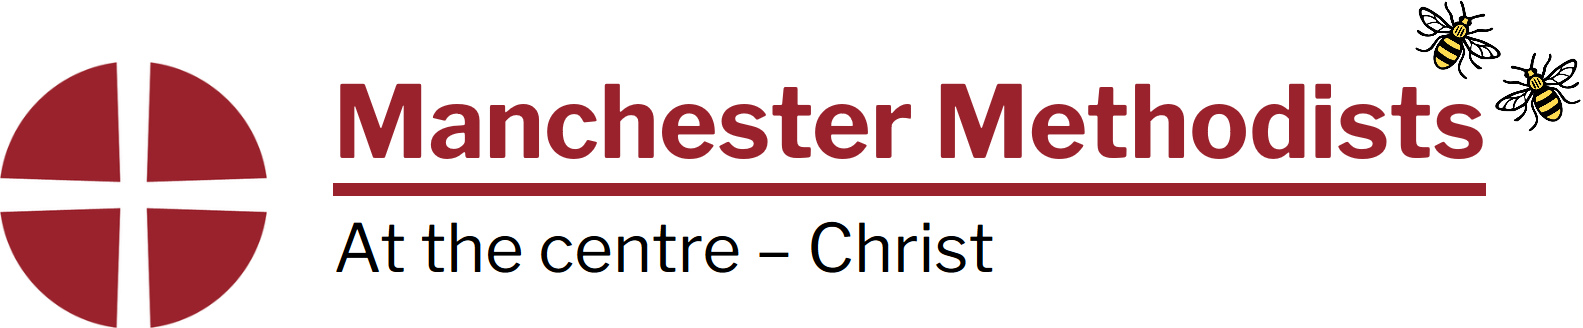 Manchester Methodists